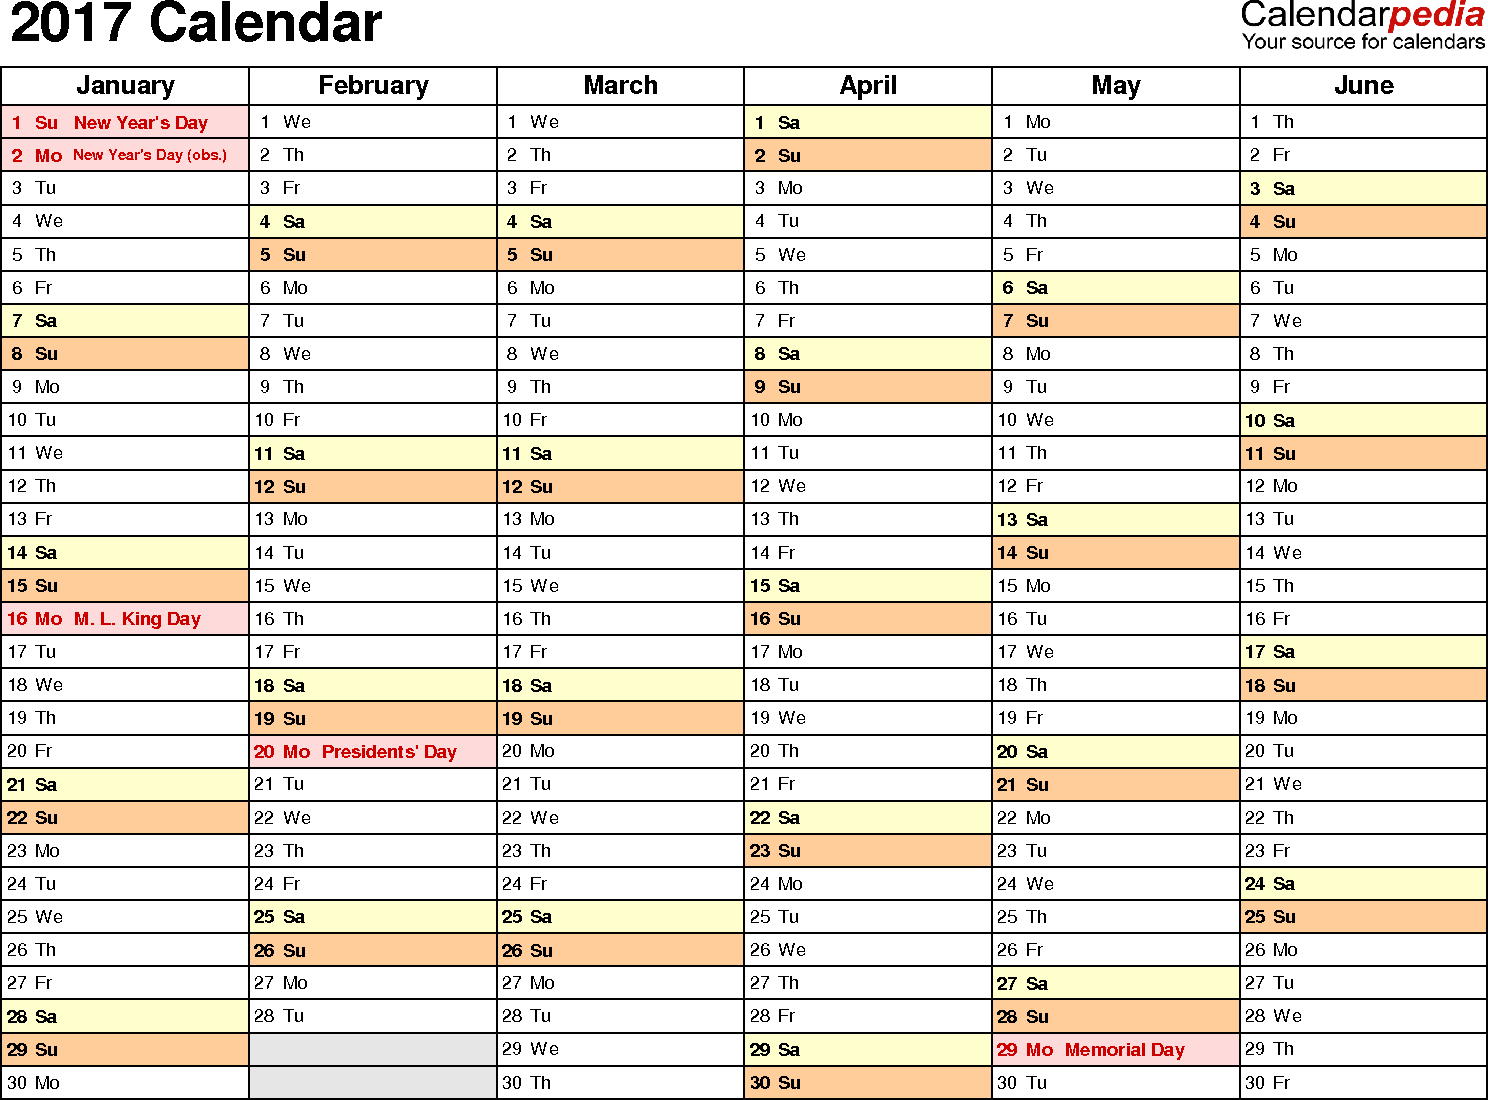 Ediblewildsus  Stunning  Calendar  Download  Free Printable Excel Templates Xls With Engaging Template   Calendar For Excel Months Horizontally  Pages Landscape Orientation With Archaic Annual Rate Of Return Excel Also Excel Electronic Signature In Addition Gillette Excel And Rtf To Excel As Well As Date Subtraction In Excel Additionally Excel Templates Schedule From Calendarpediacom With Ediblewildsus  Engaging  Calendar  Download  Free Printable Excel Templates Xls With Archaic Template   Calendar For Excel Months Horizontally  Pages Landscape Orientation And Stunning Annual Rate Of Return Excel Also Excel Electronic Signature In Addition Gillette Excel From Calendarpediacom